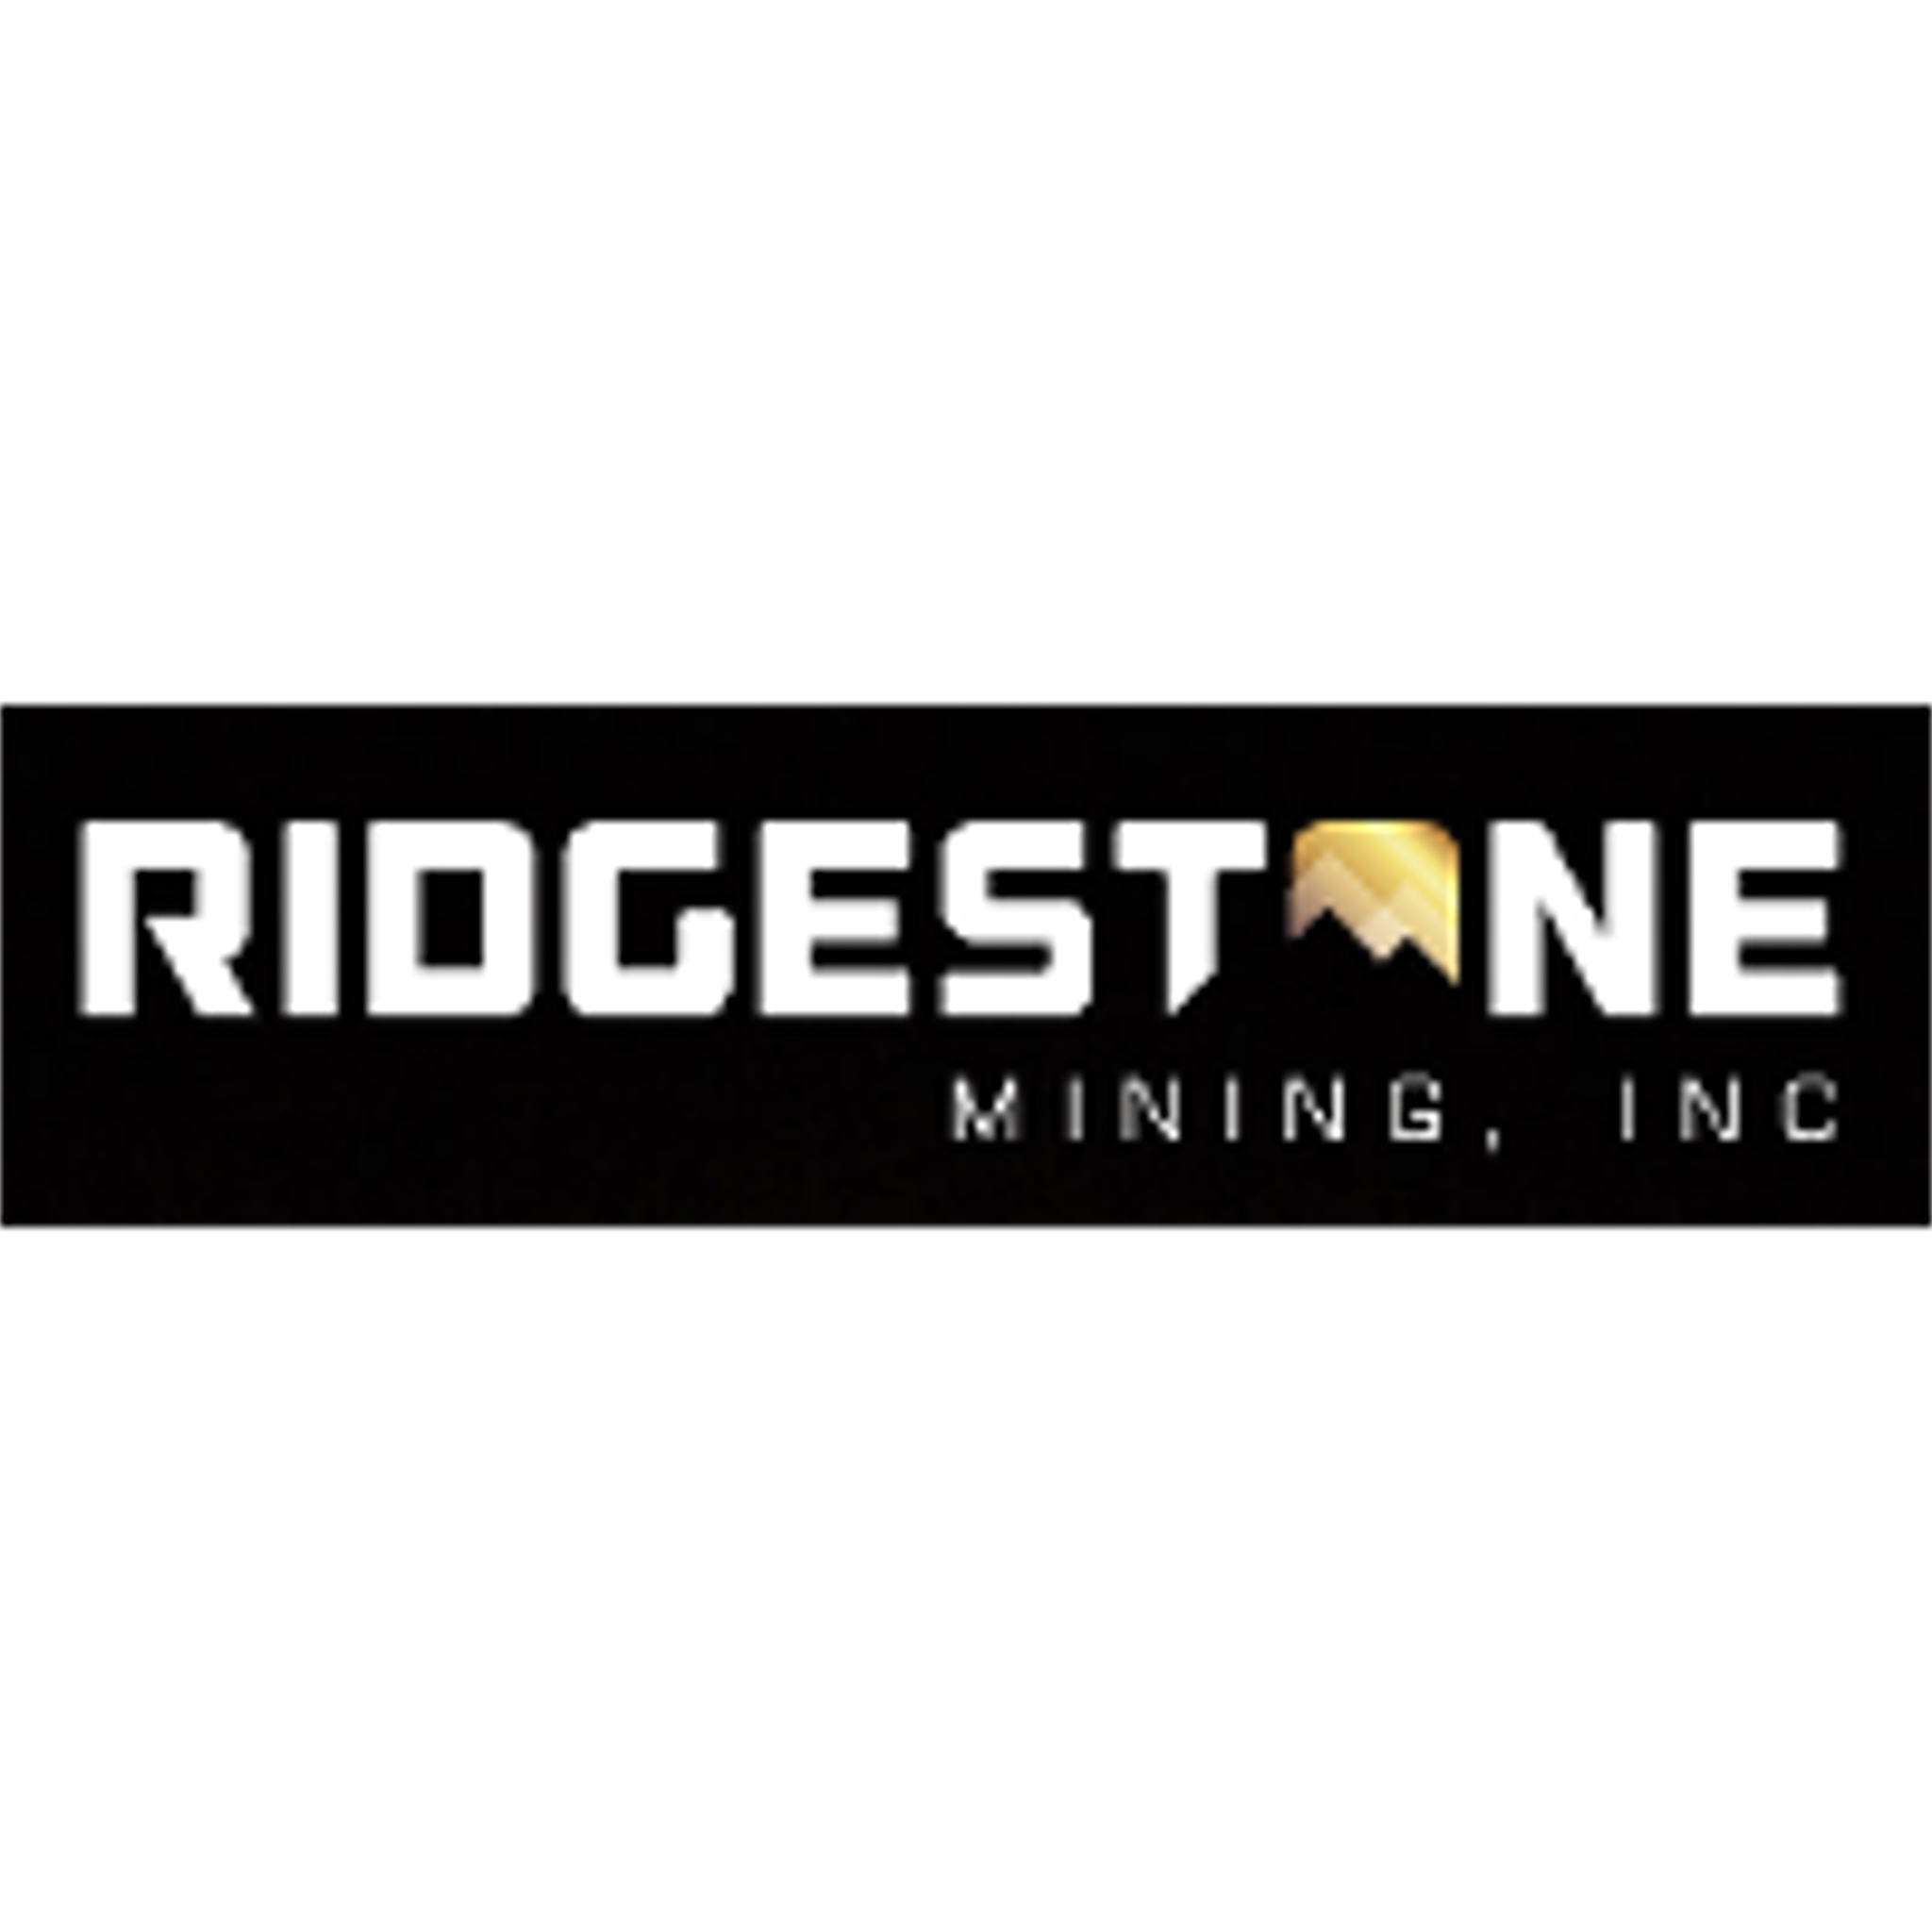 Ridgestone Mining is a client of Natrinova Capital Inc.